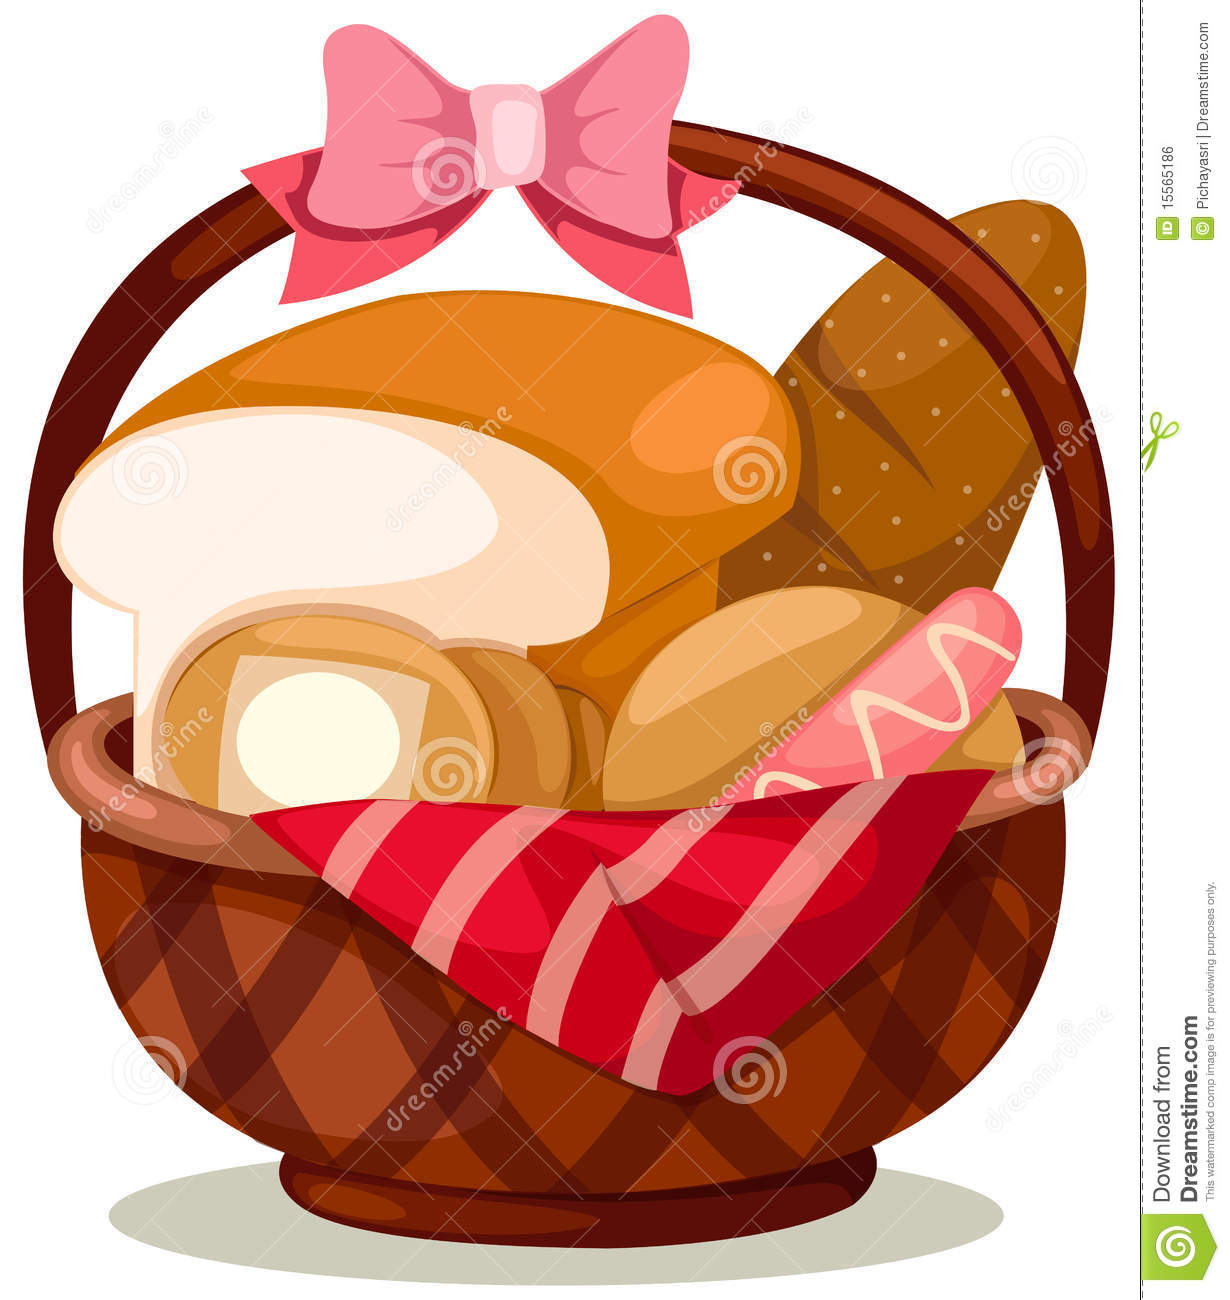 Bread Basket Clipart.